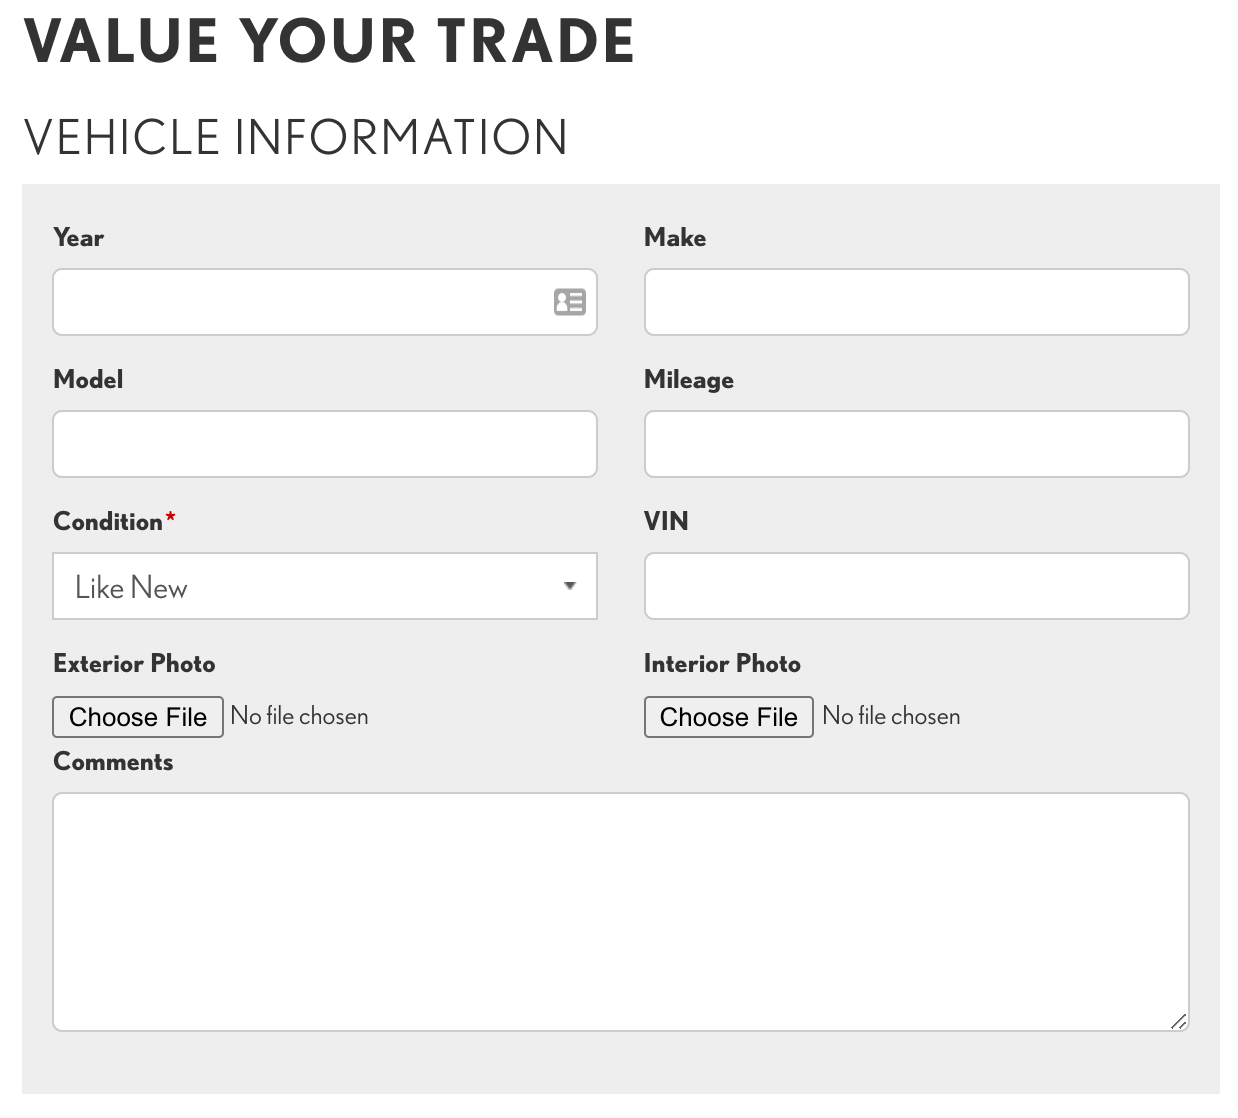 Value Your Trade form